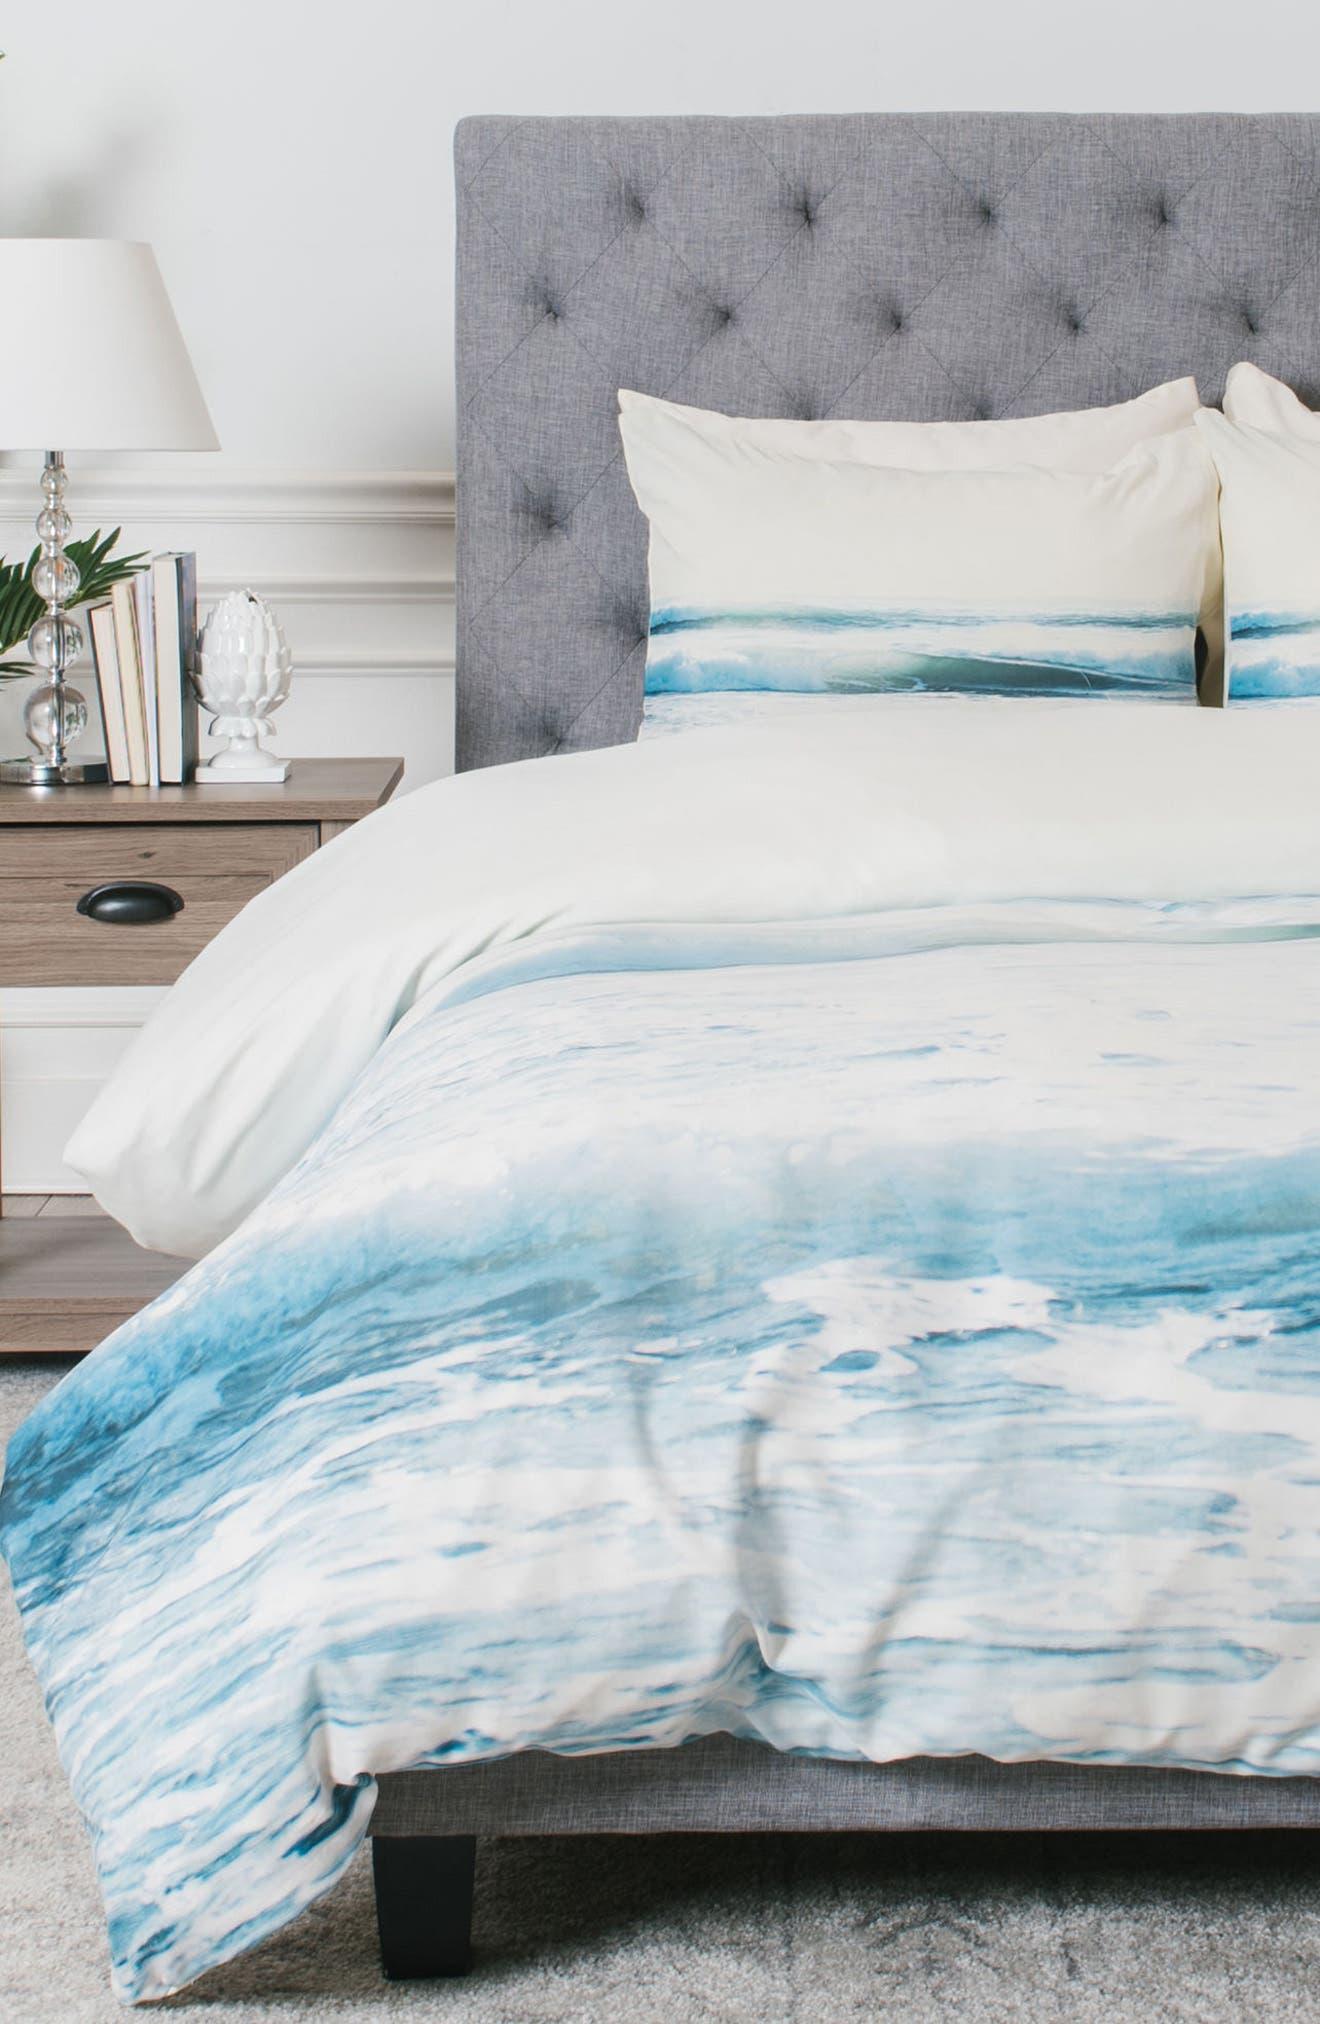 DENY Designs Ride Waves Duvet Cover & Sham Set